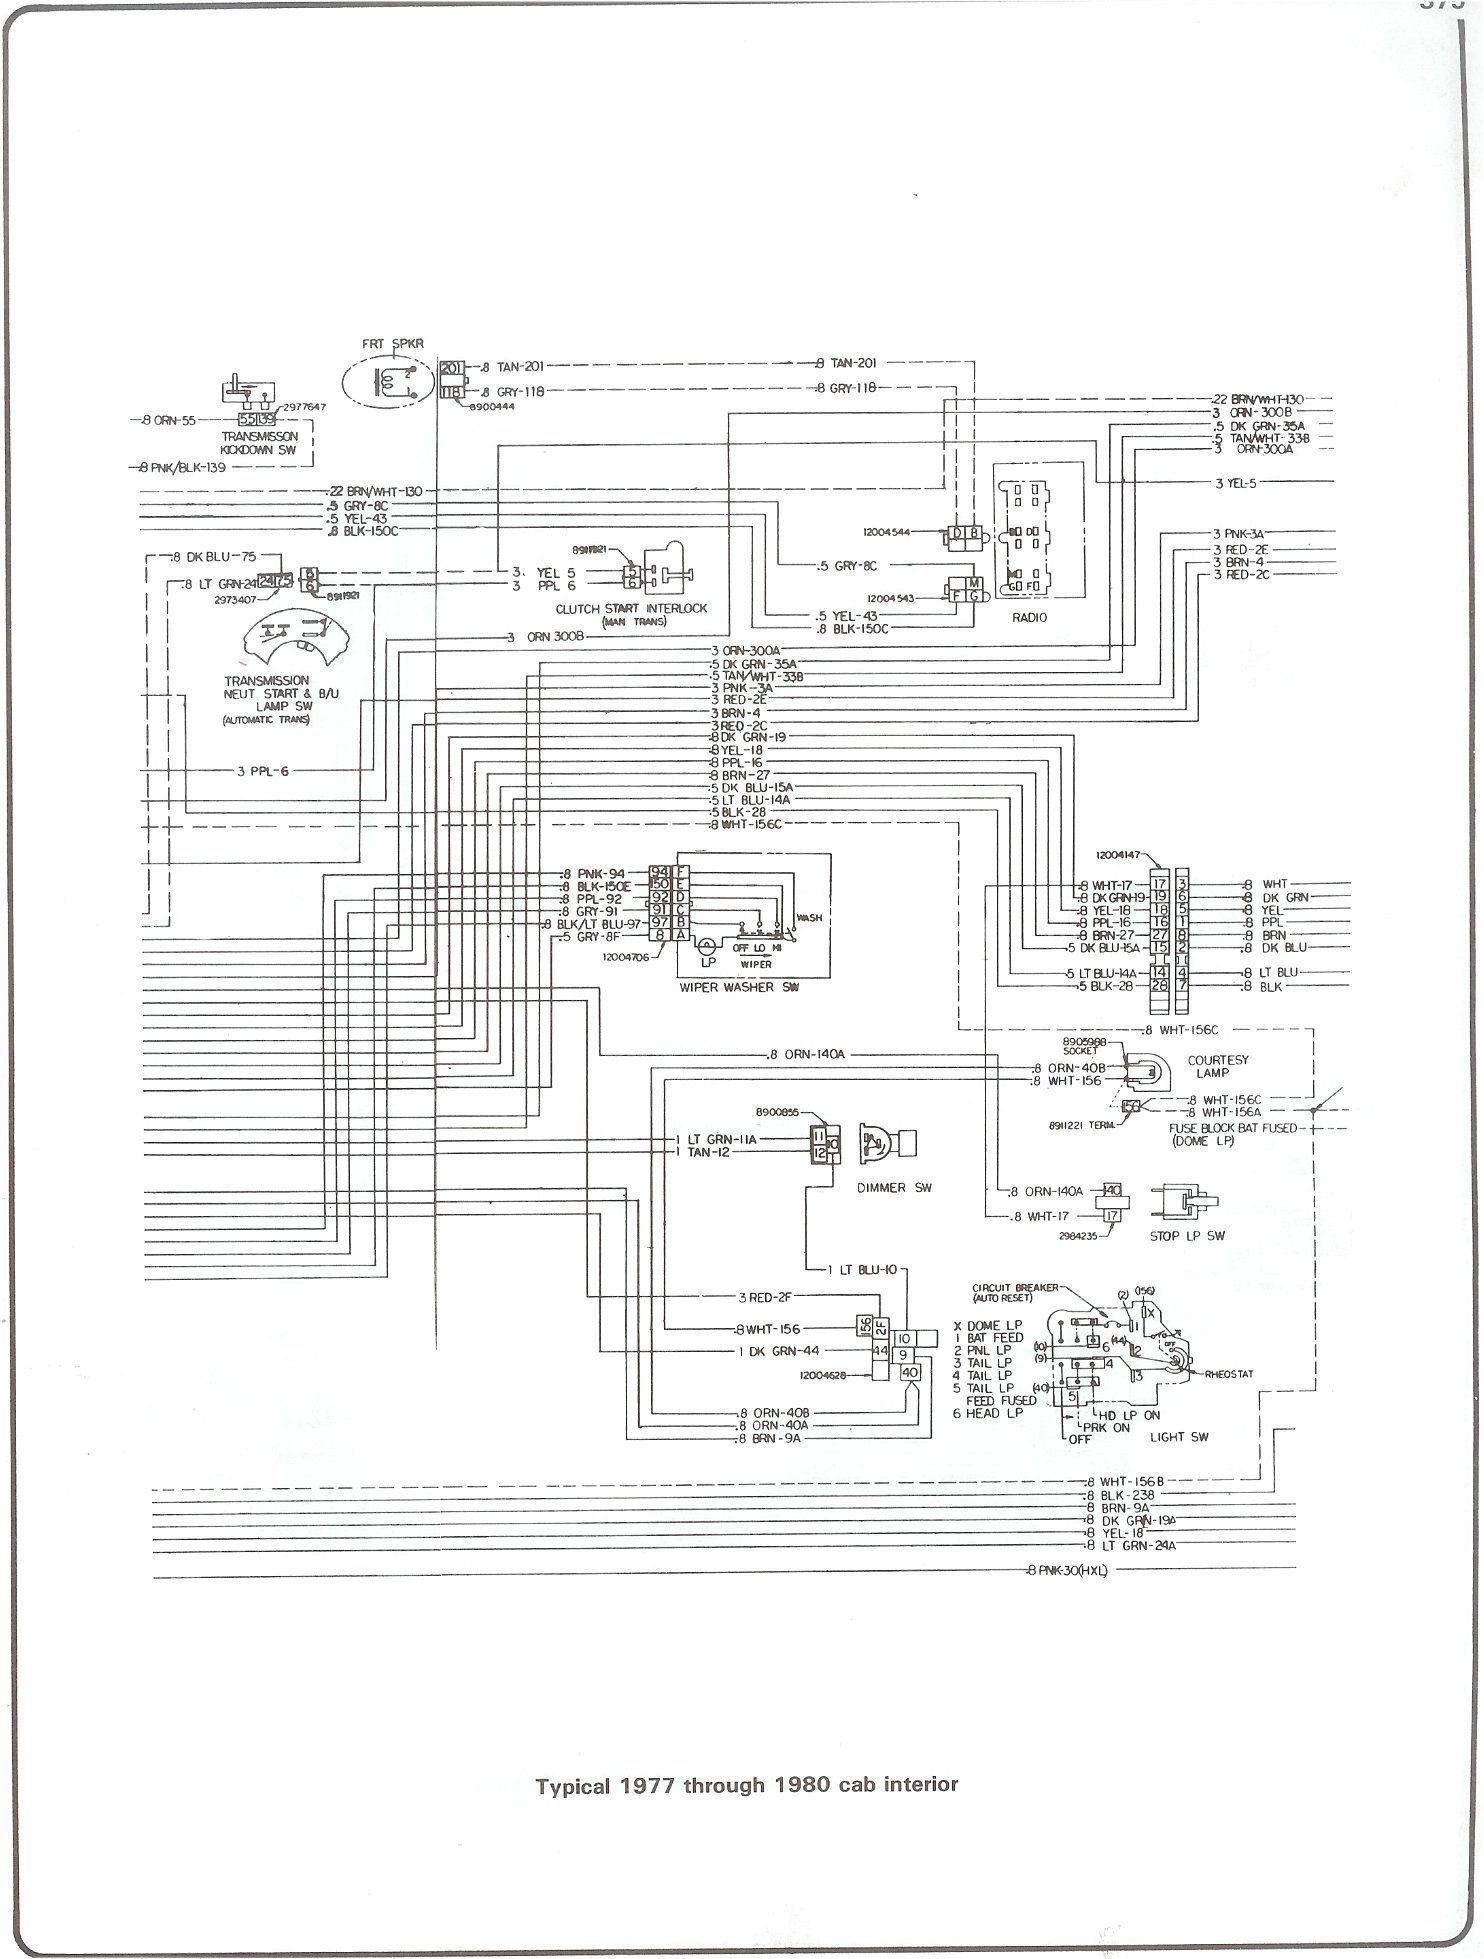 77 80_cab_inter complete 73 87 wiring diagrams 1978 Chevy C10 Wiring-Diagram at panicattacktreatment.co